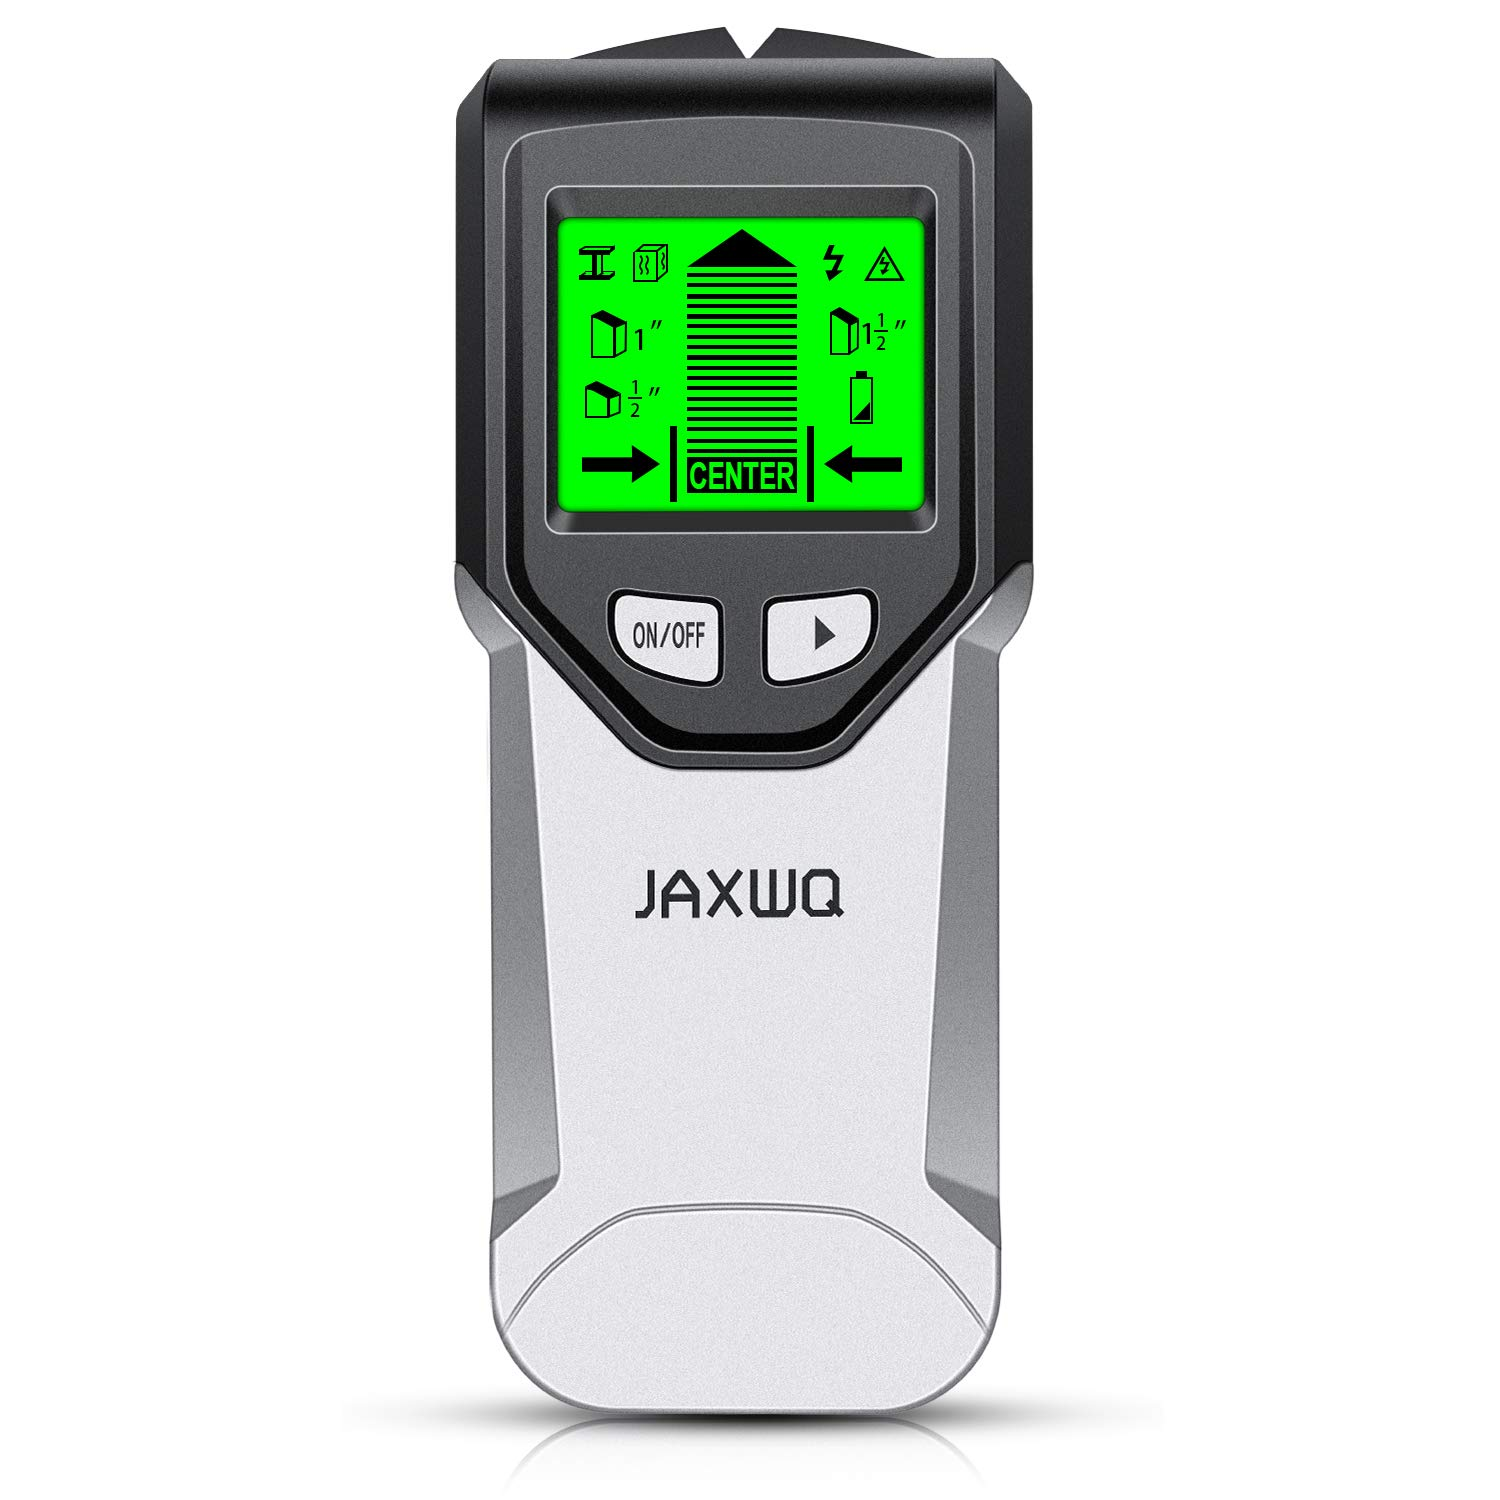 Stud Finder Wall Scanner 5 in 1Stud Detector with Intelligent Microprocessor chip, HD LCD Display and Audio Alarm, Accurate and Fast Location for the Center and Edge of Metal, Studs, AC wire by JAXWQ